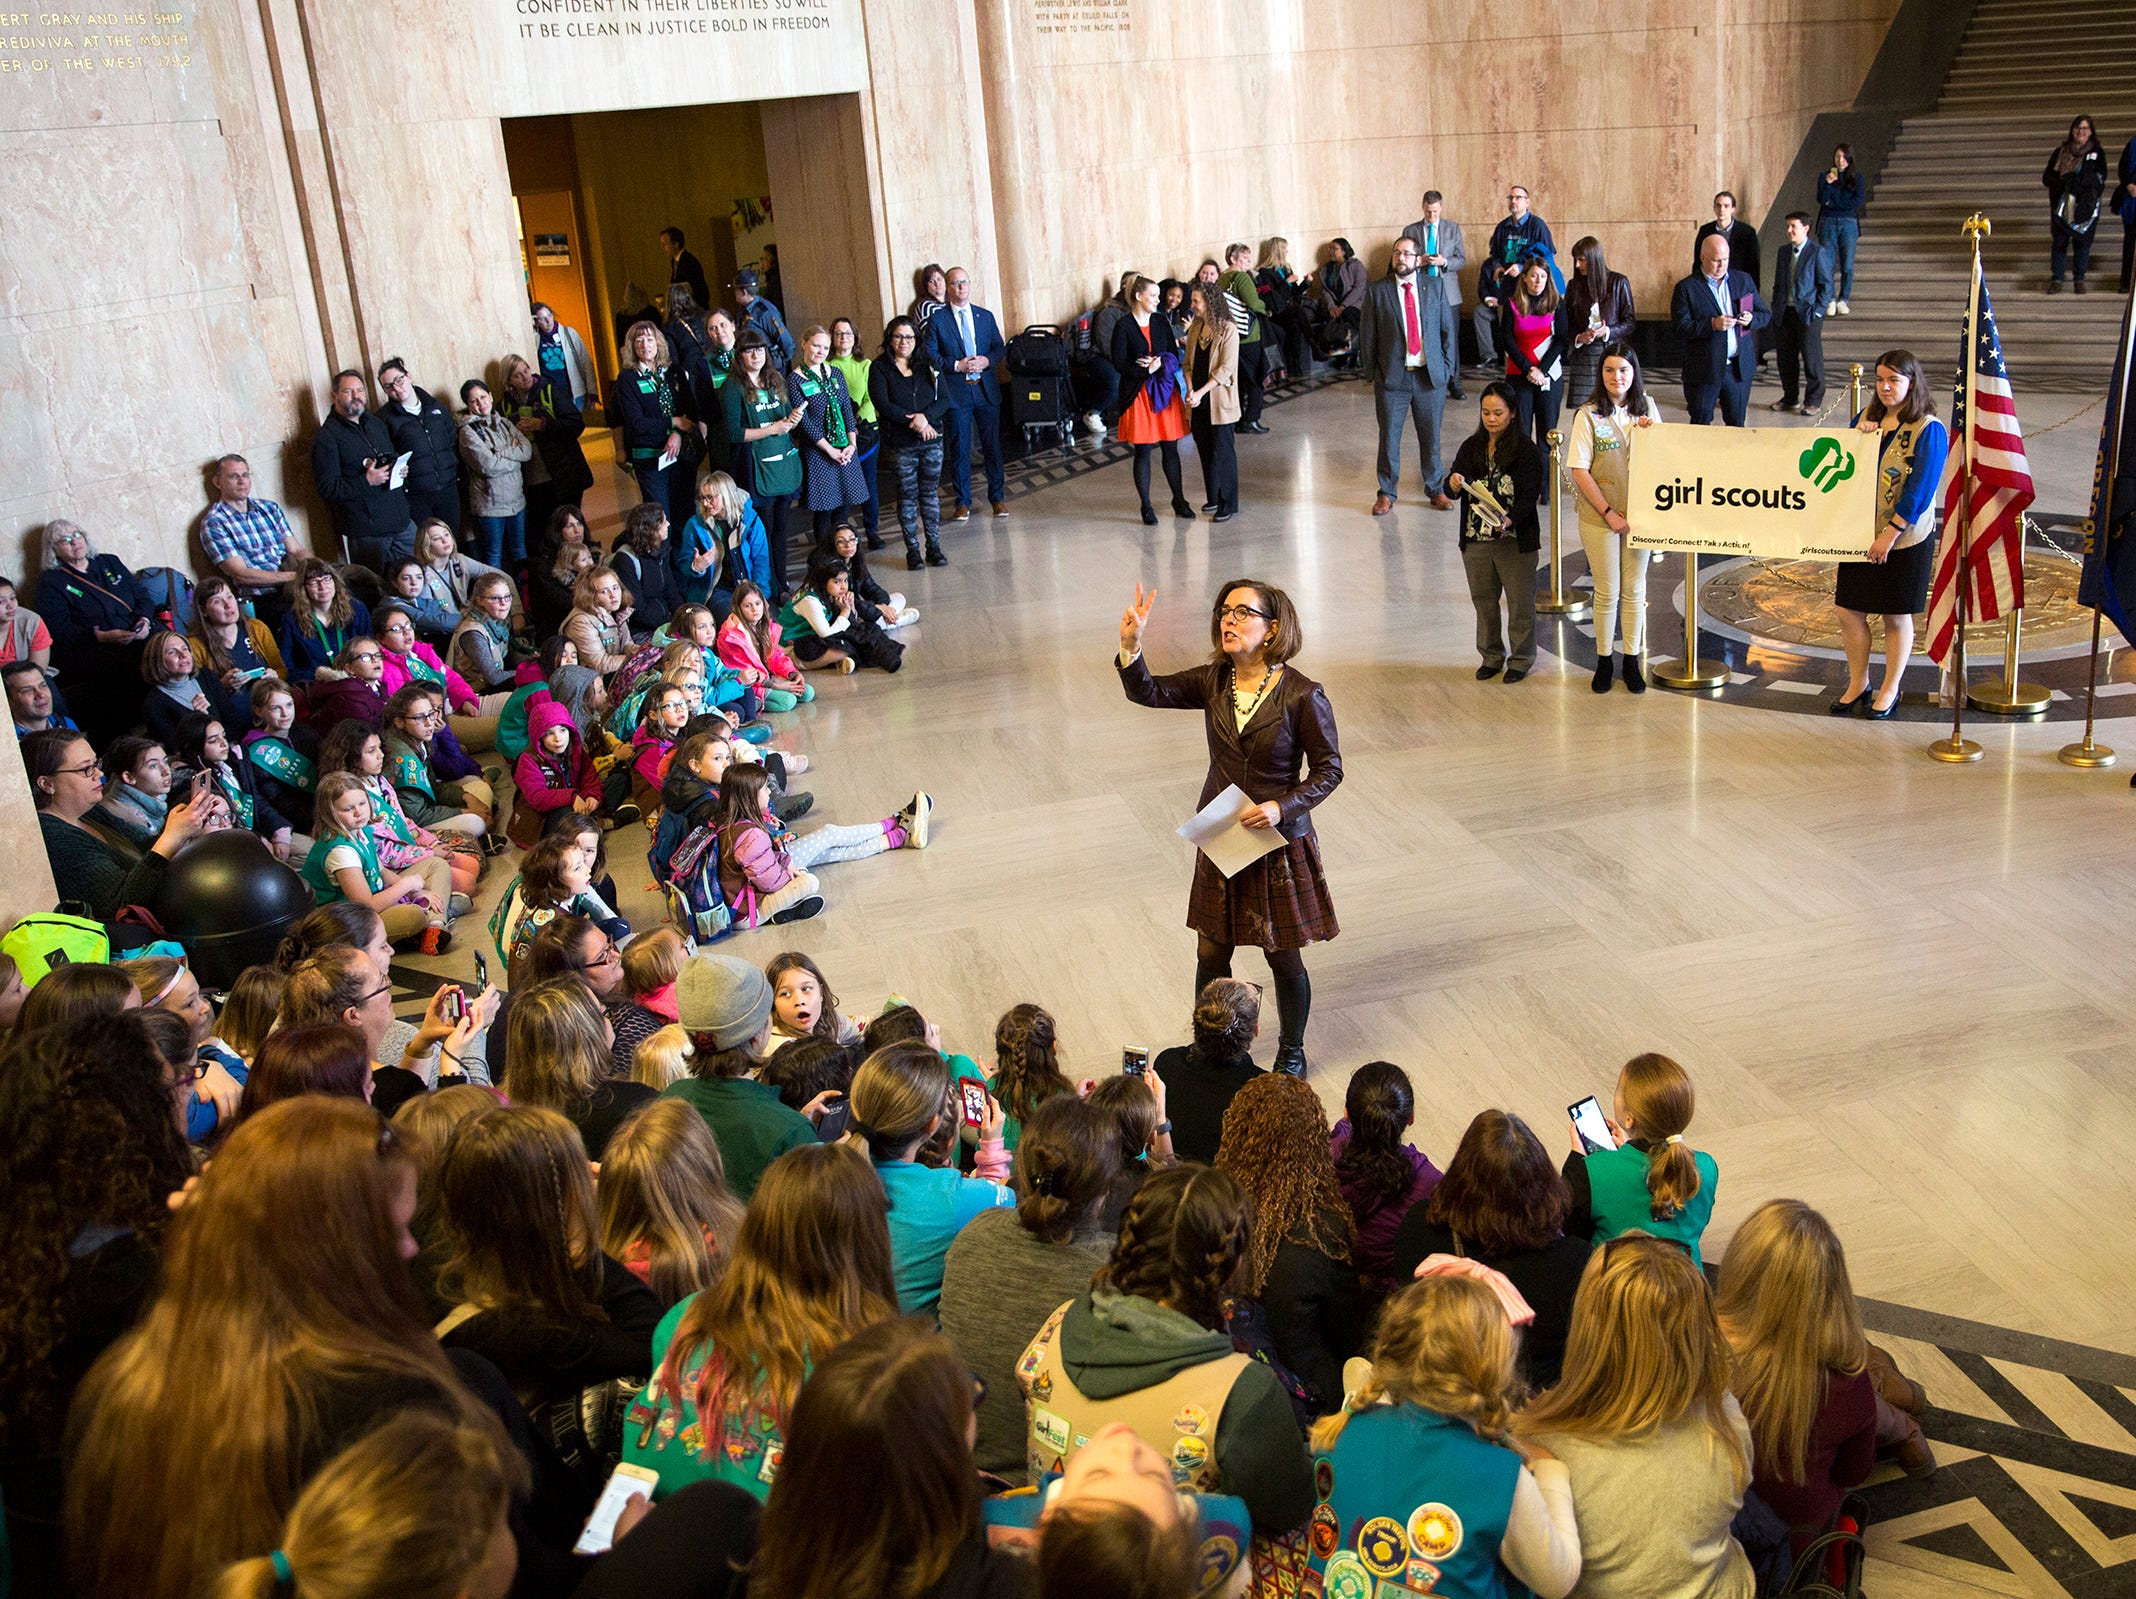 Gov. Kate Brown speaks to nearly 200 Girl Scouts and 100 adult volunteers during Girl Scout Leadership Day at the Oregon State Capitol in Salem March 12, 2019.